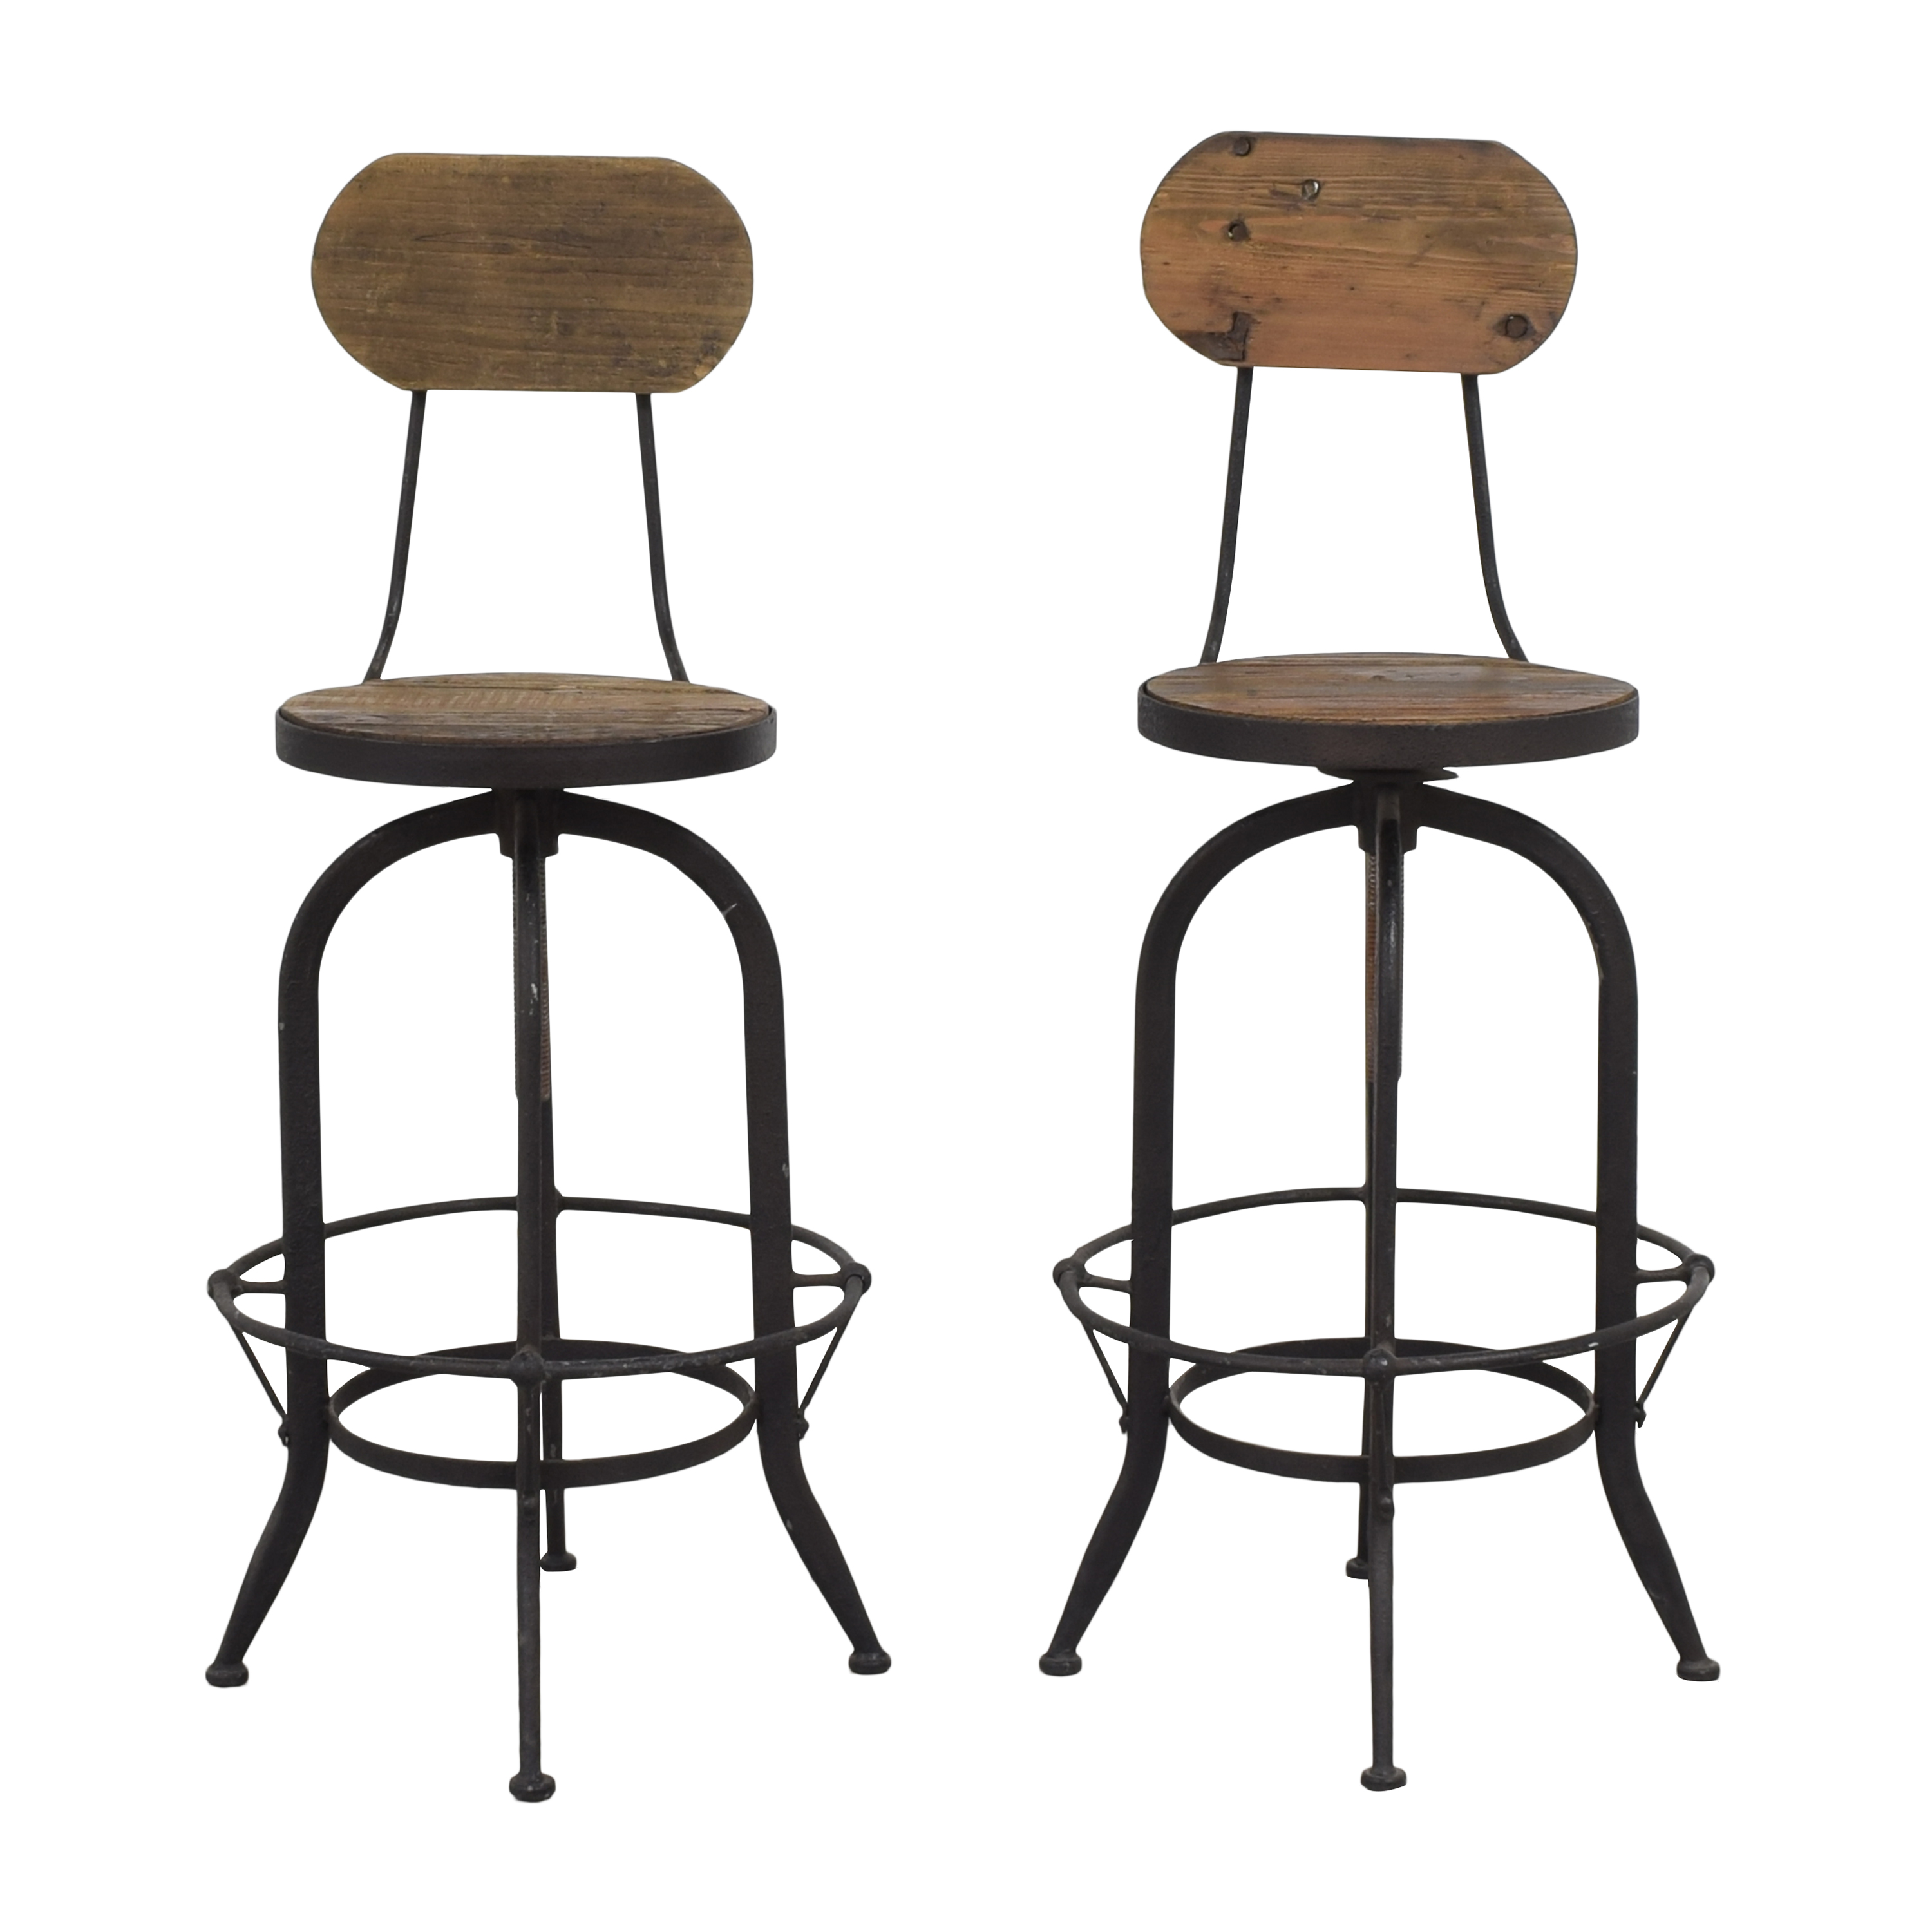 Adjustable Drafting Stools / Home Office Chairs